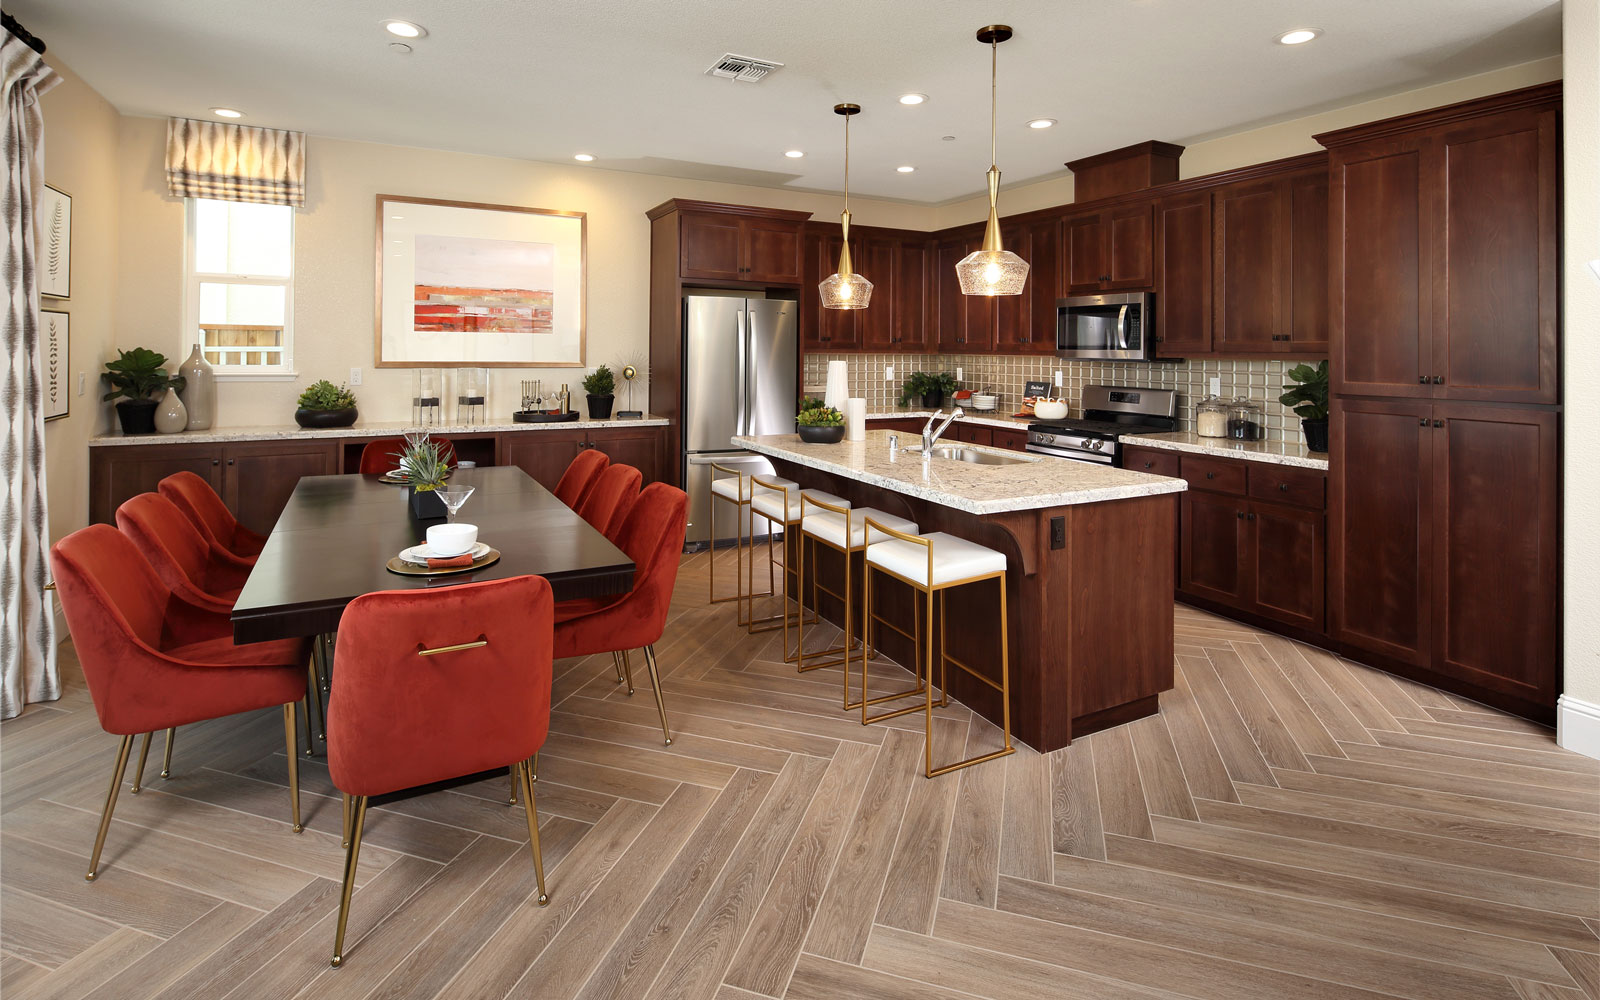 Dining and Kitchen Residence 1 Easton at Delaney Park in Oakley CA Brookfield Residential